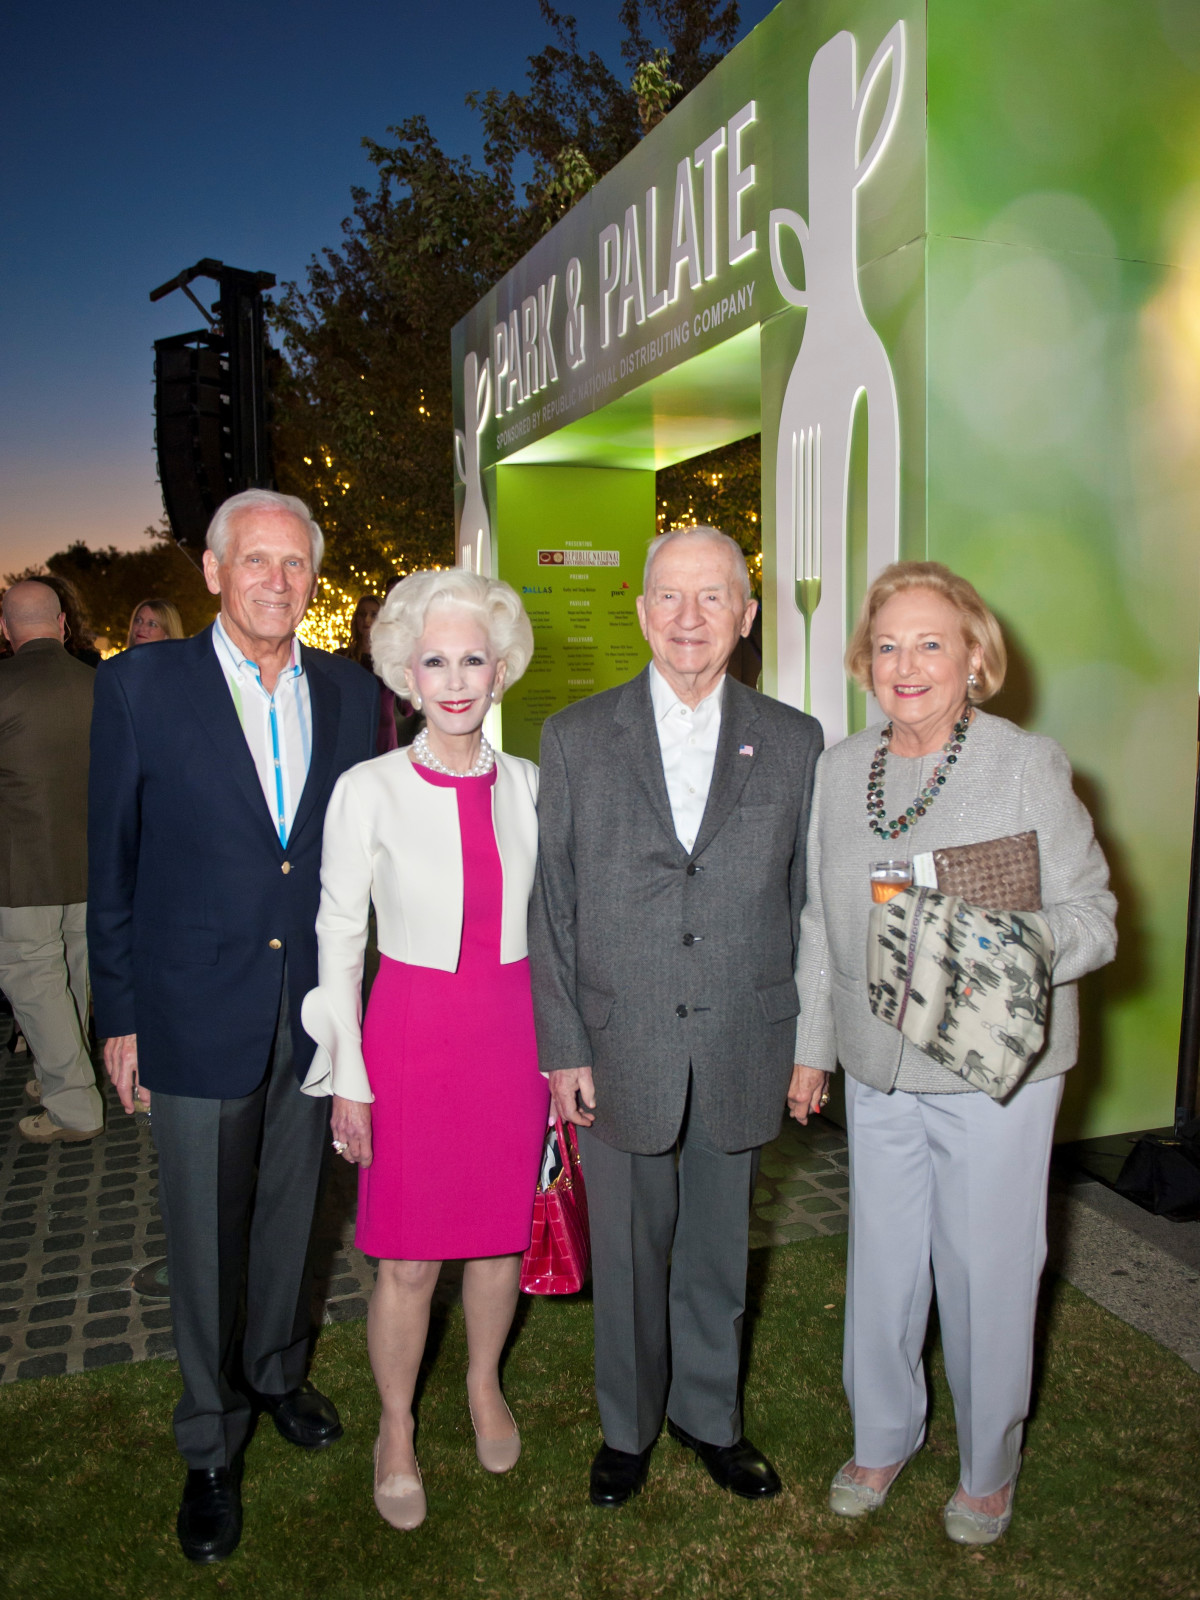 Jody Grant, Sheila Grant, Ross Perot, and Margot Perot, Park & Palate